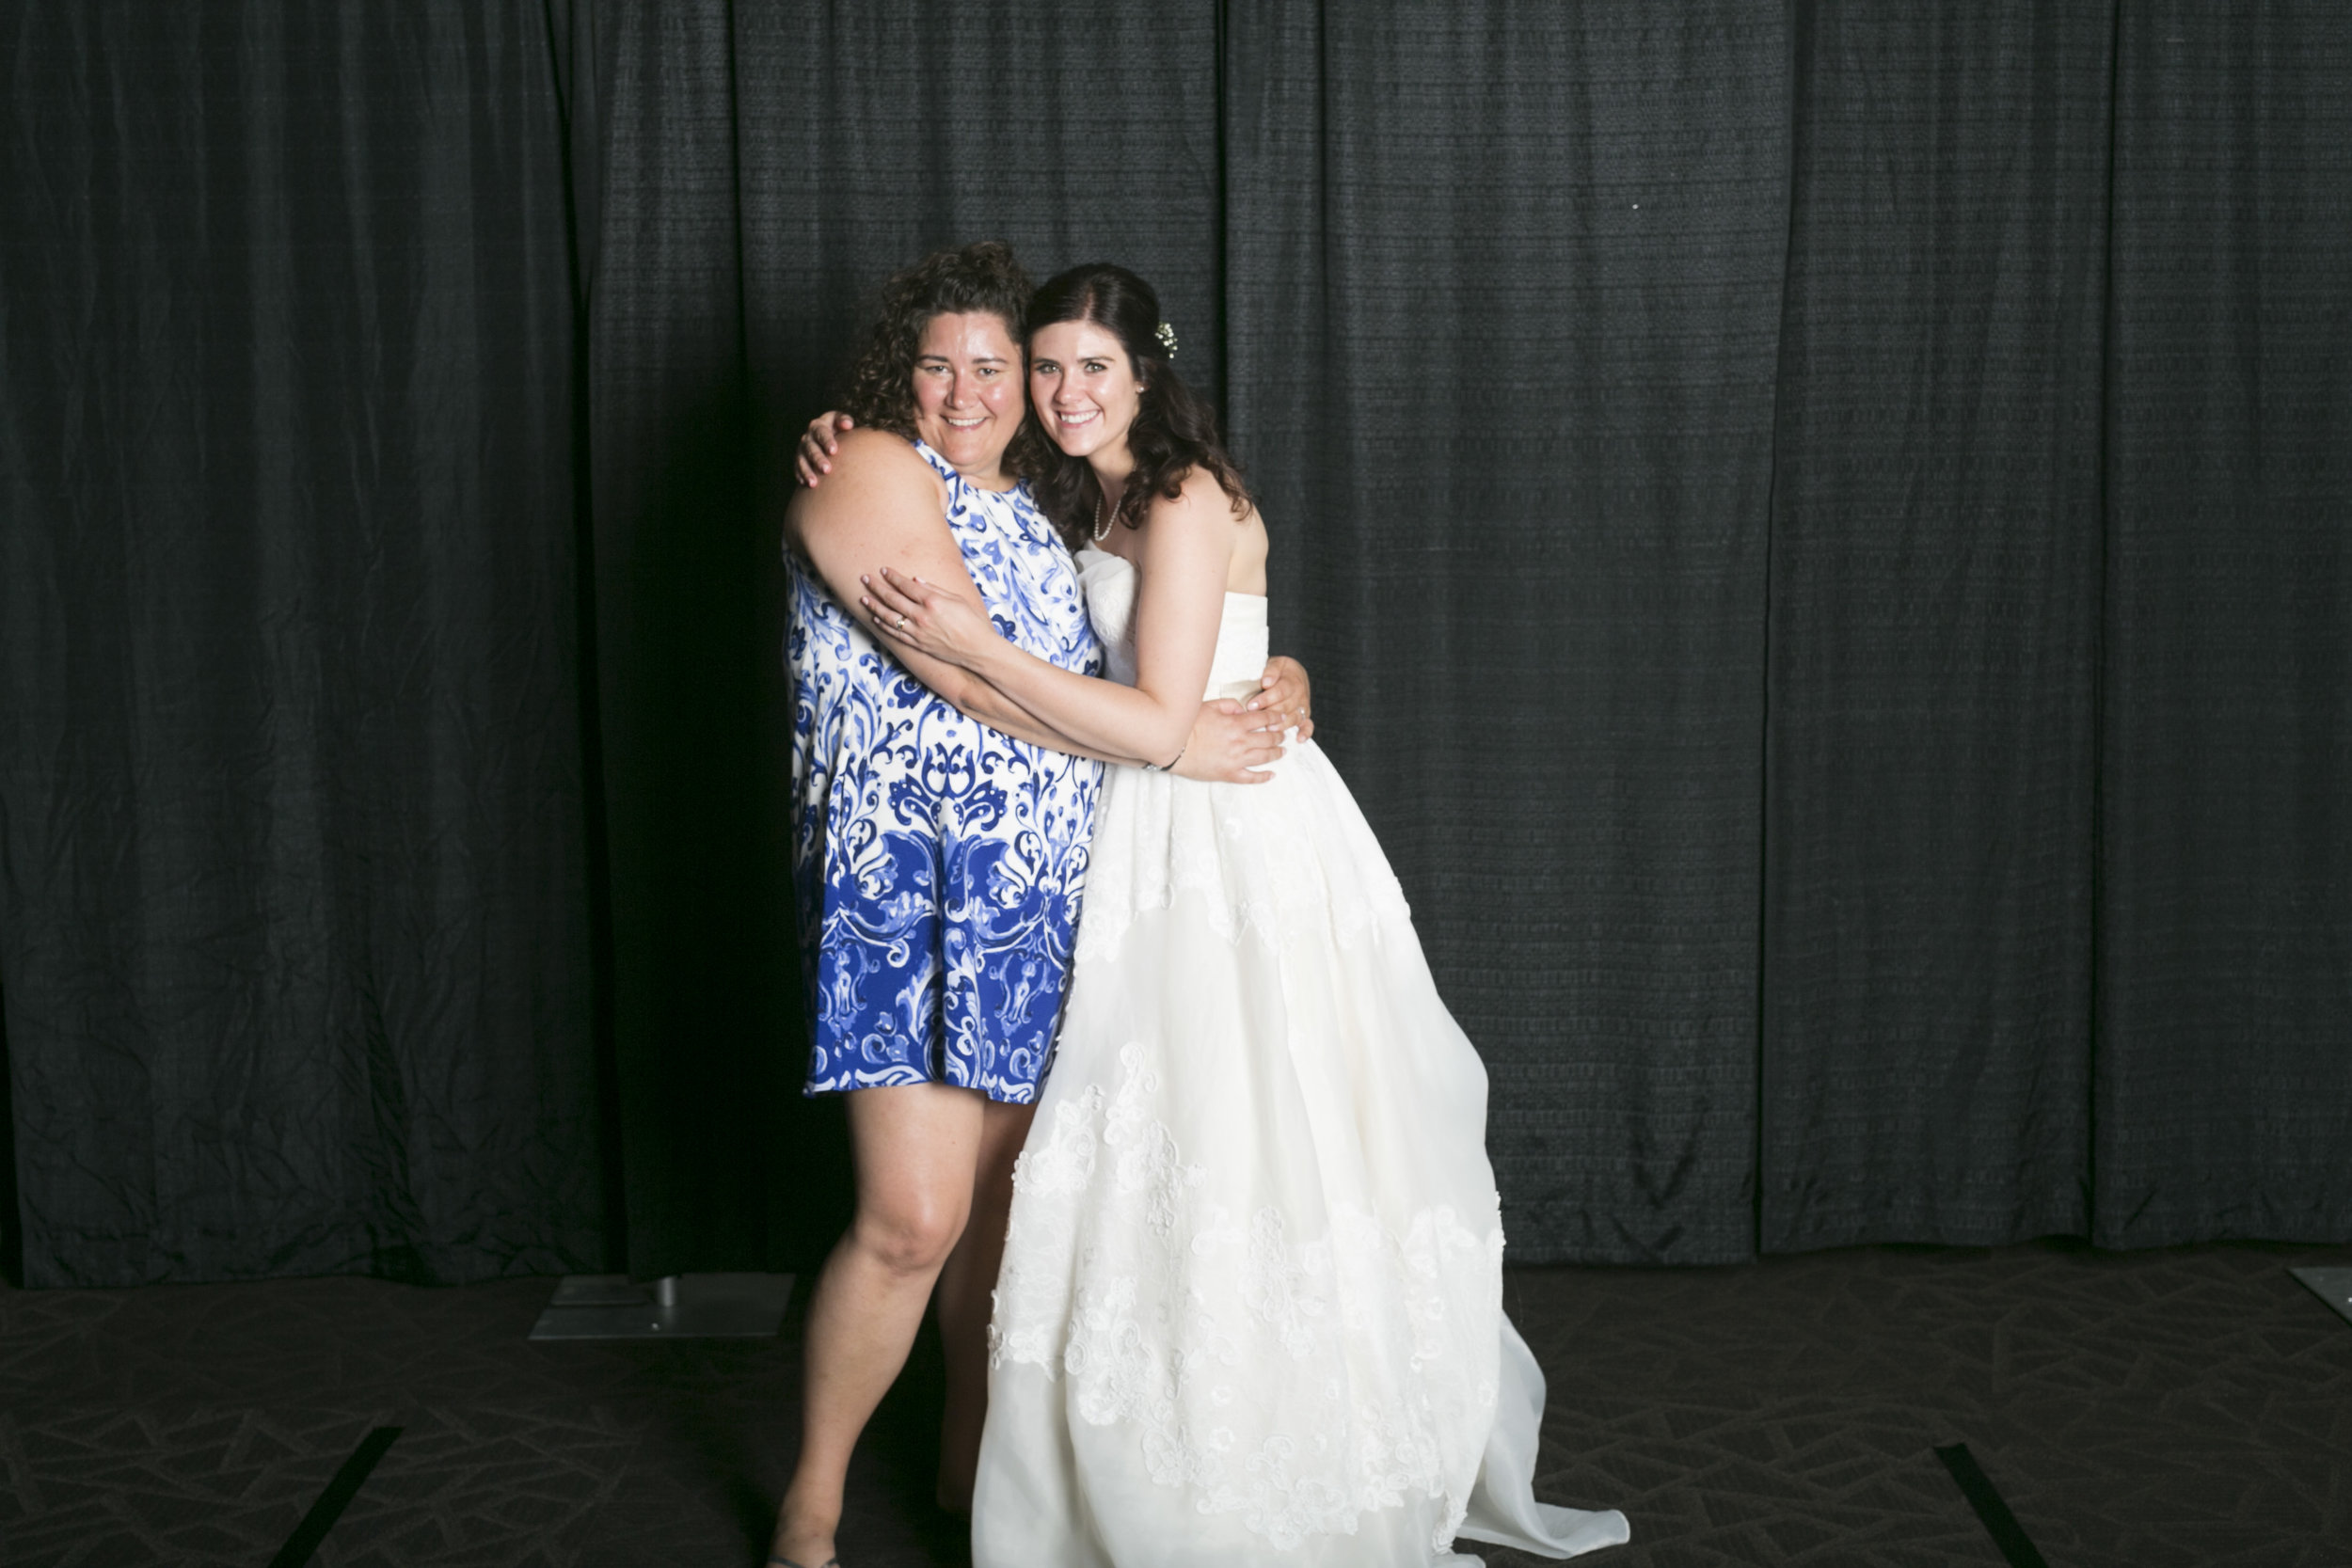 wedding photo booth-60.jpg